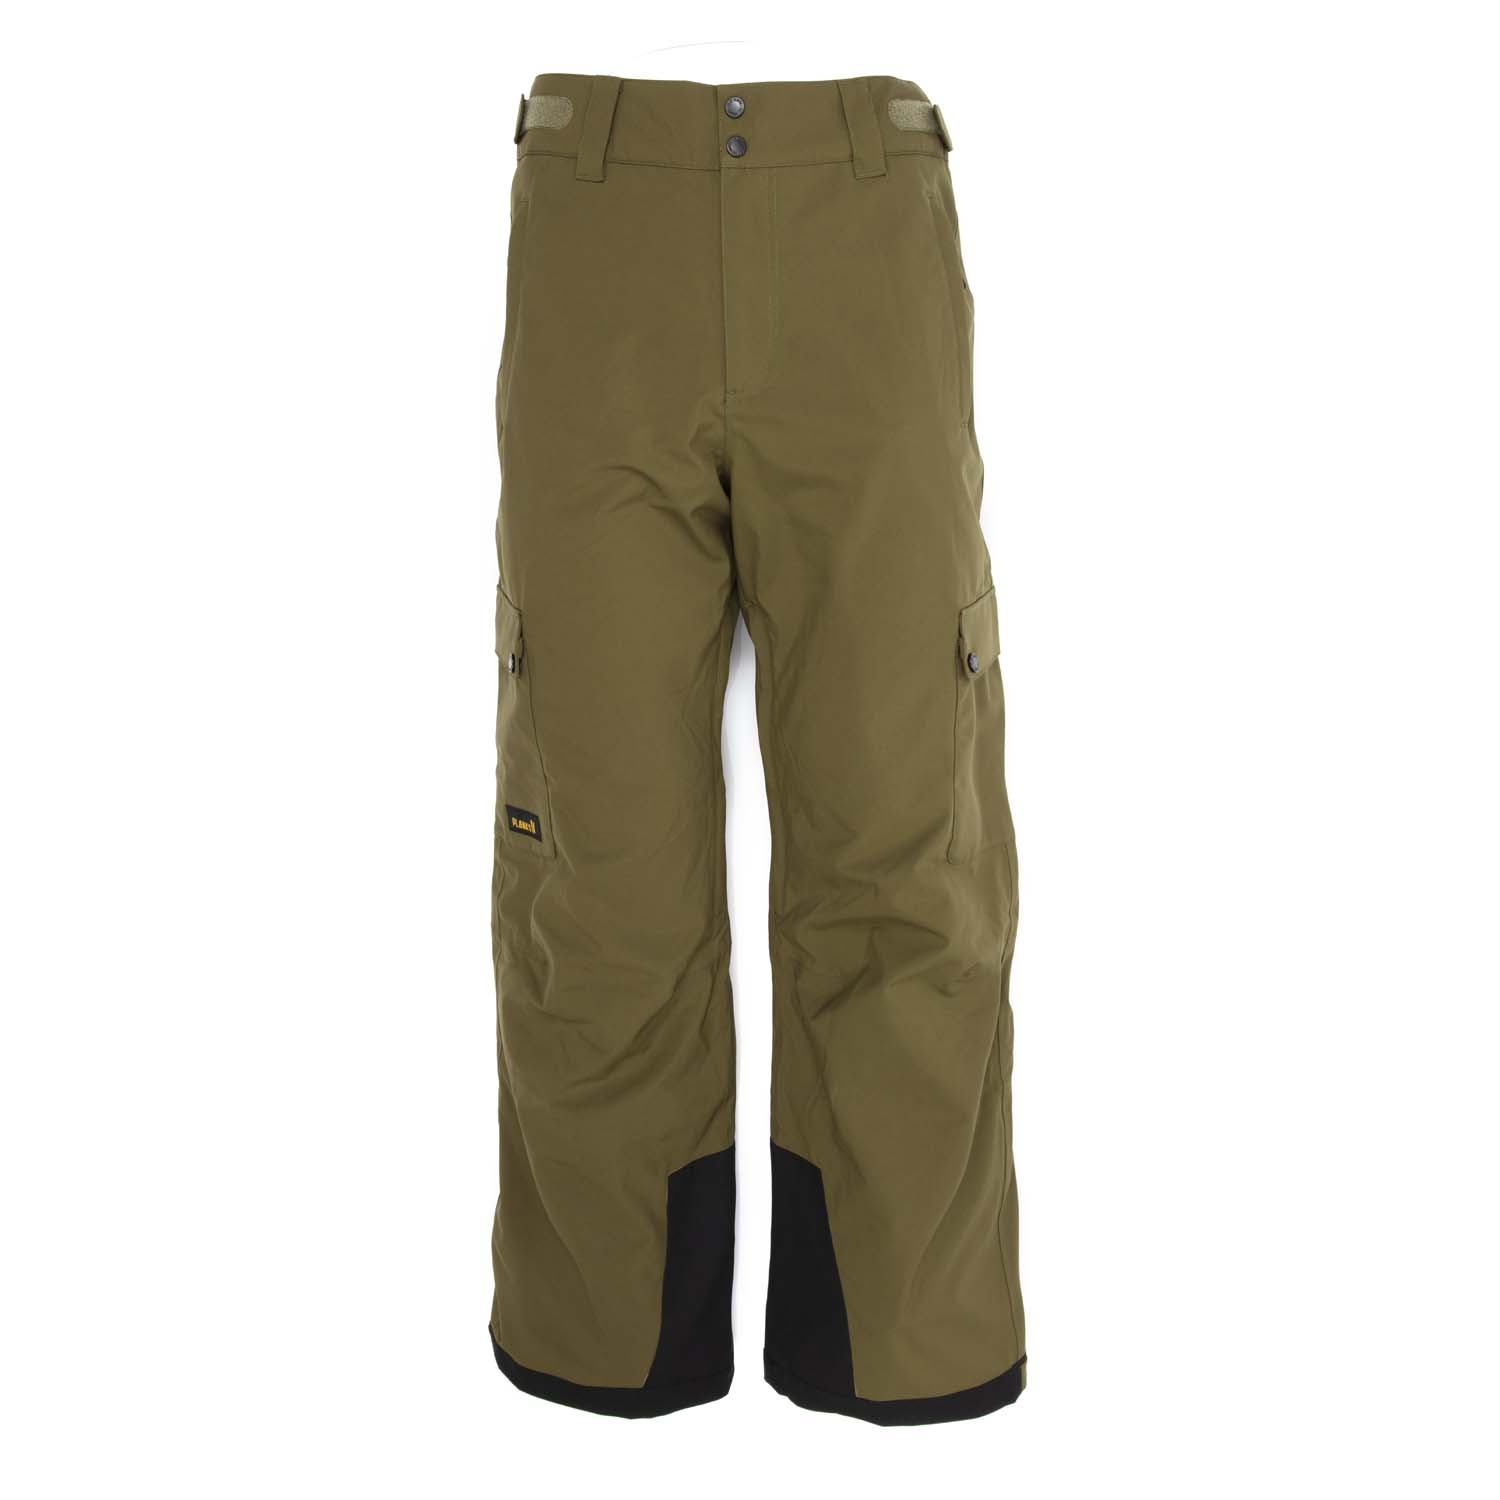 Planks Good Times Insulated Pant Army Green 2020